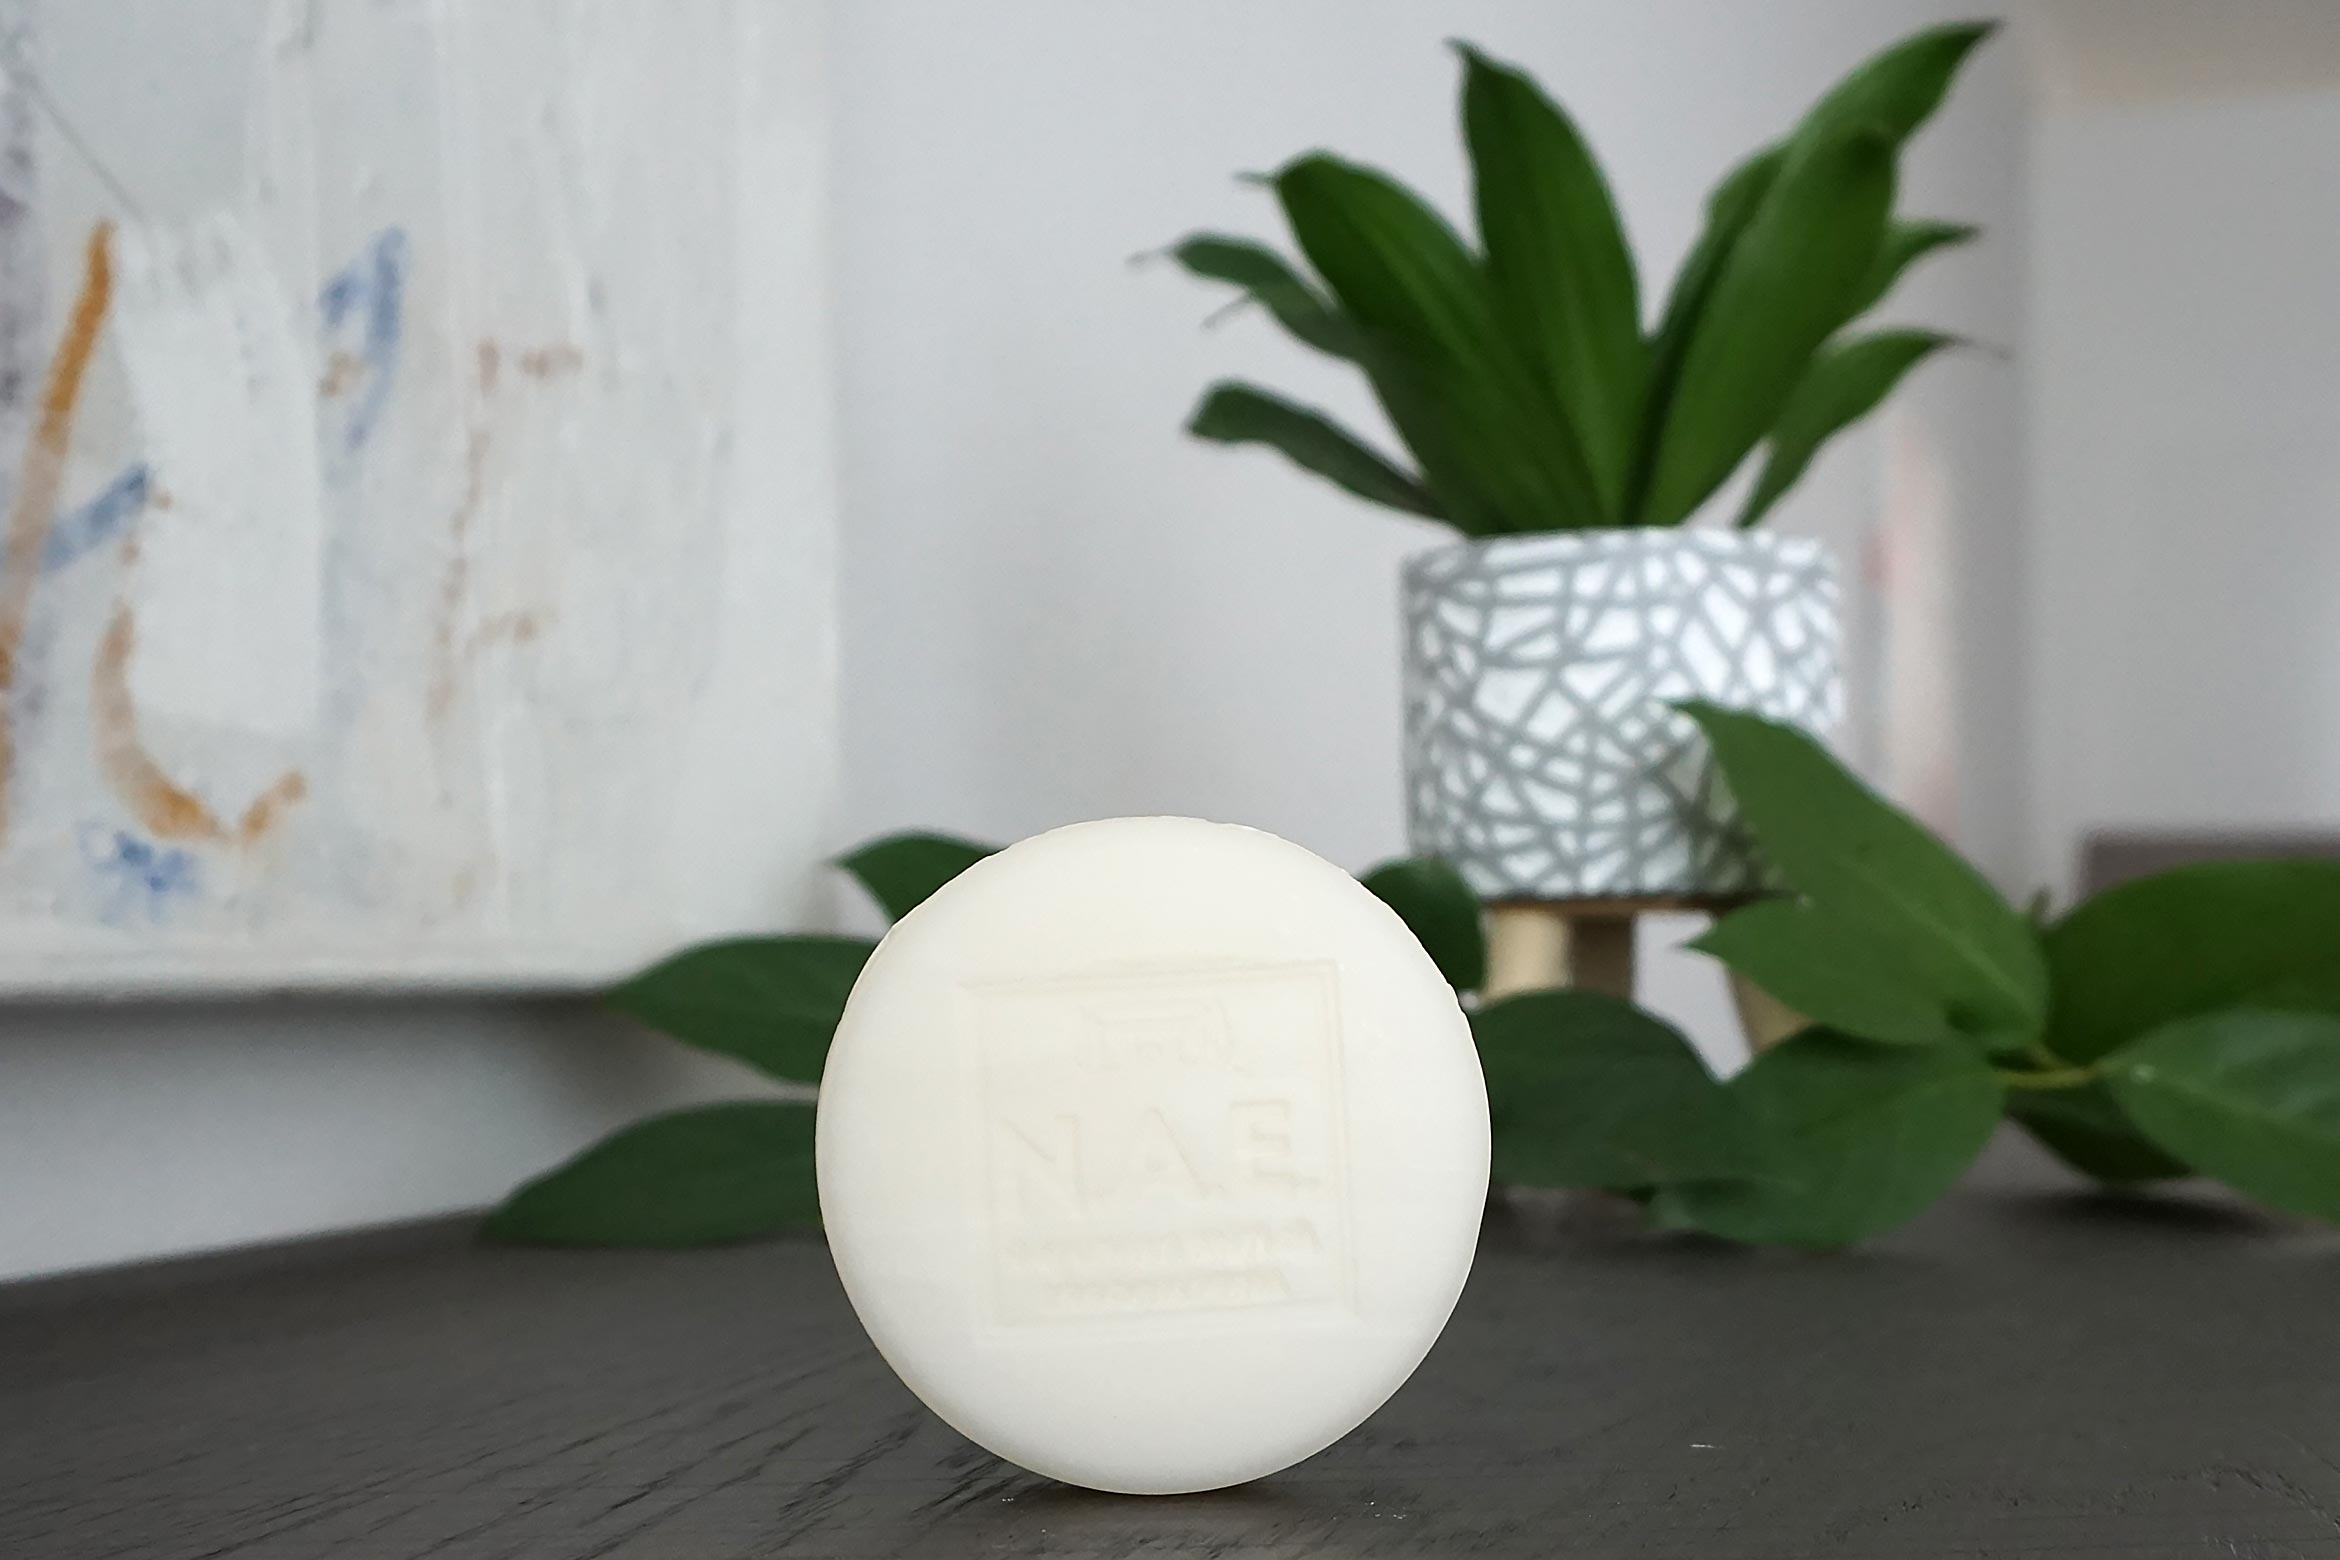 n.a.e. semplicita shampoo bar review-1